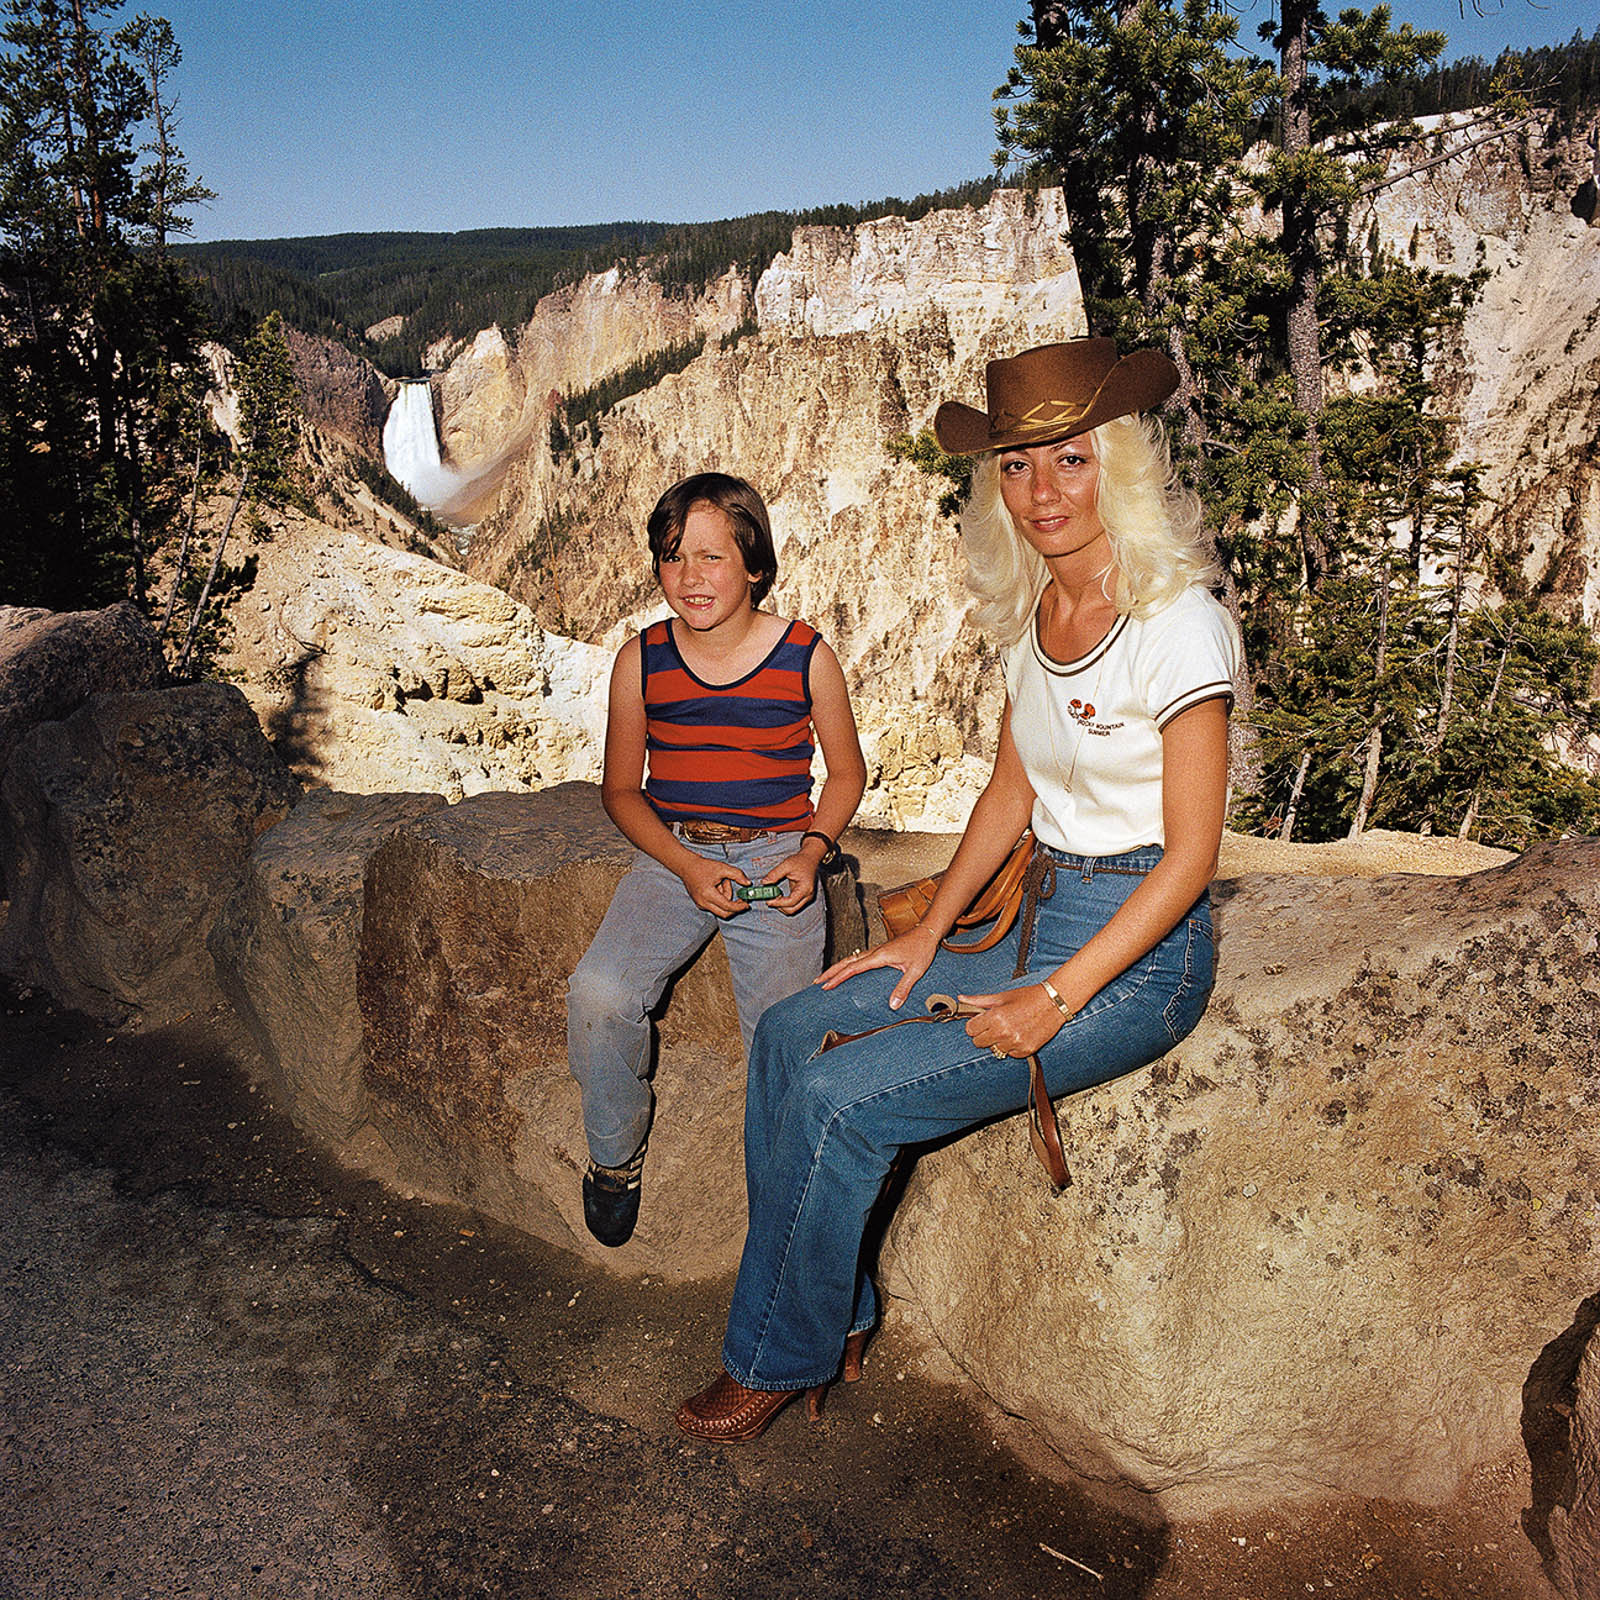 Mother & Son at Lower Falls, Grand Canyon National Park, Wyoming 1980